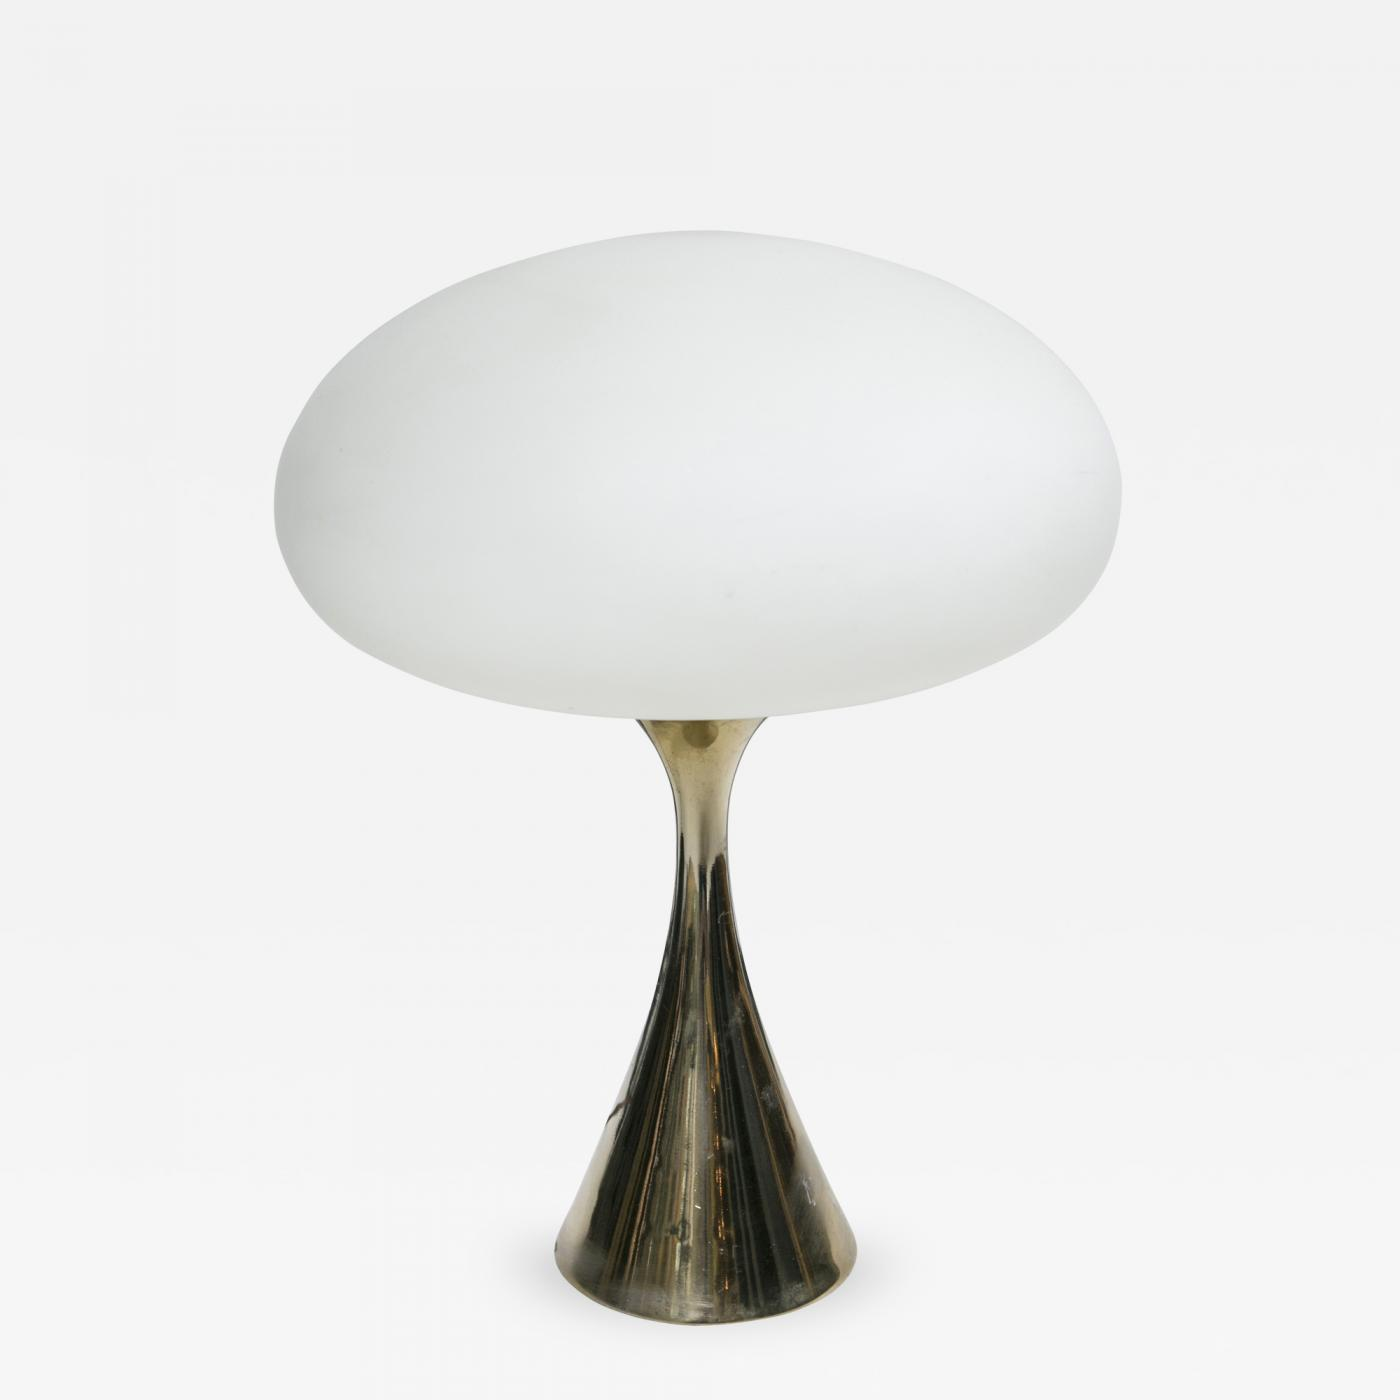 Laurel Lamp Company Bill Curry For Laurel Brass Mushroom